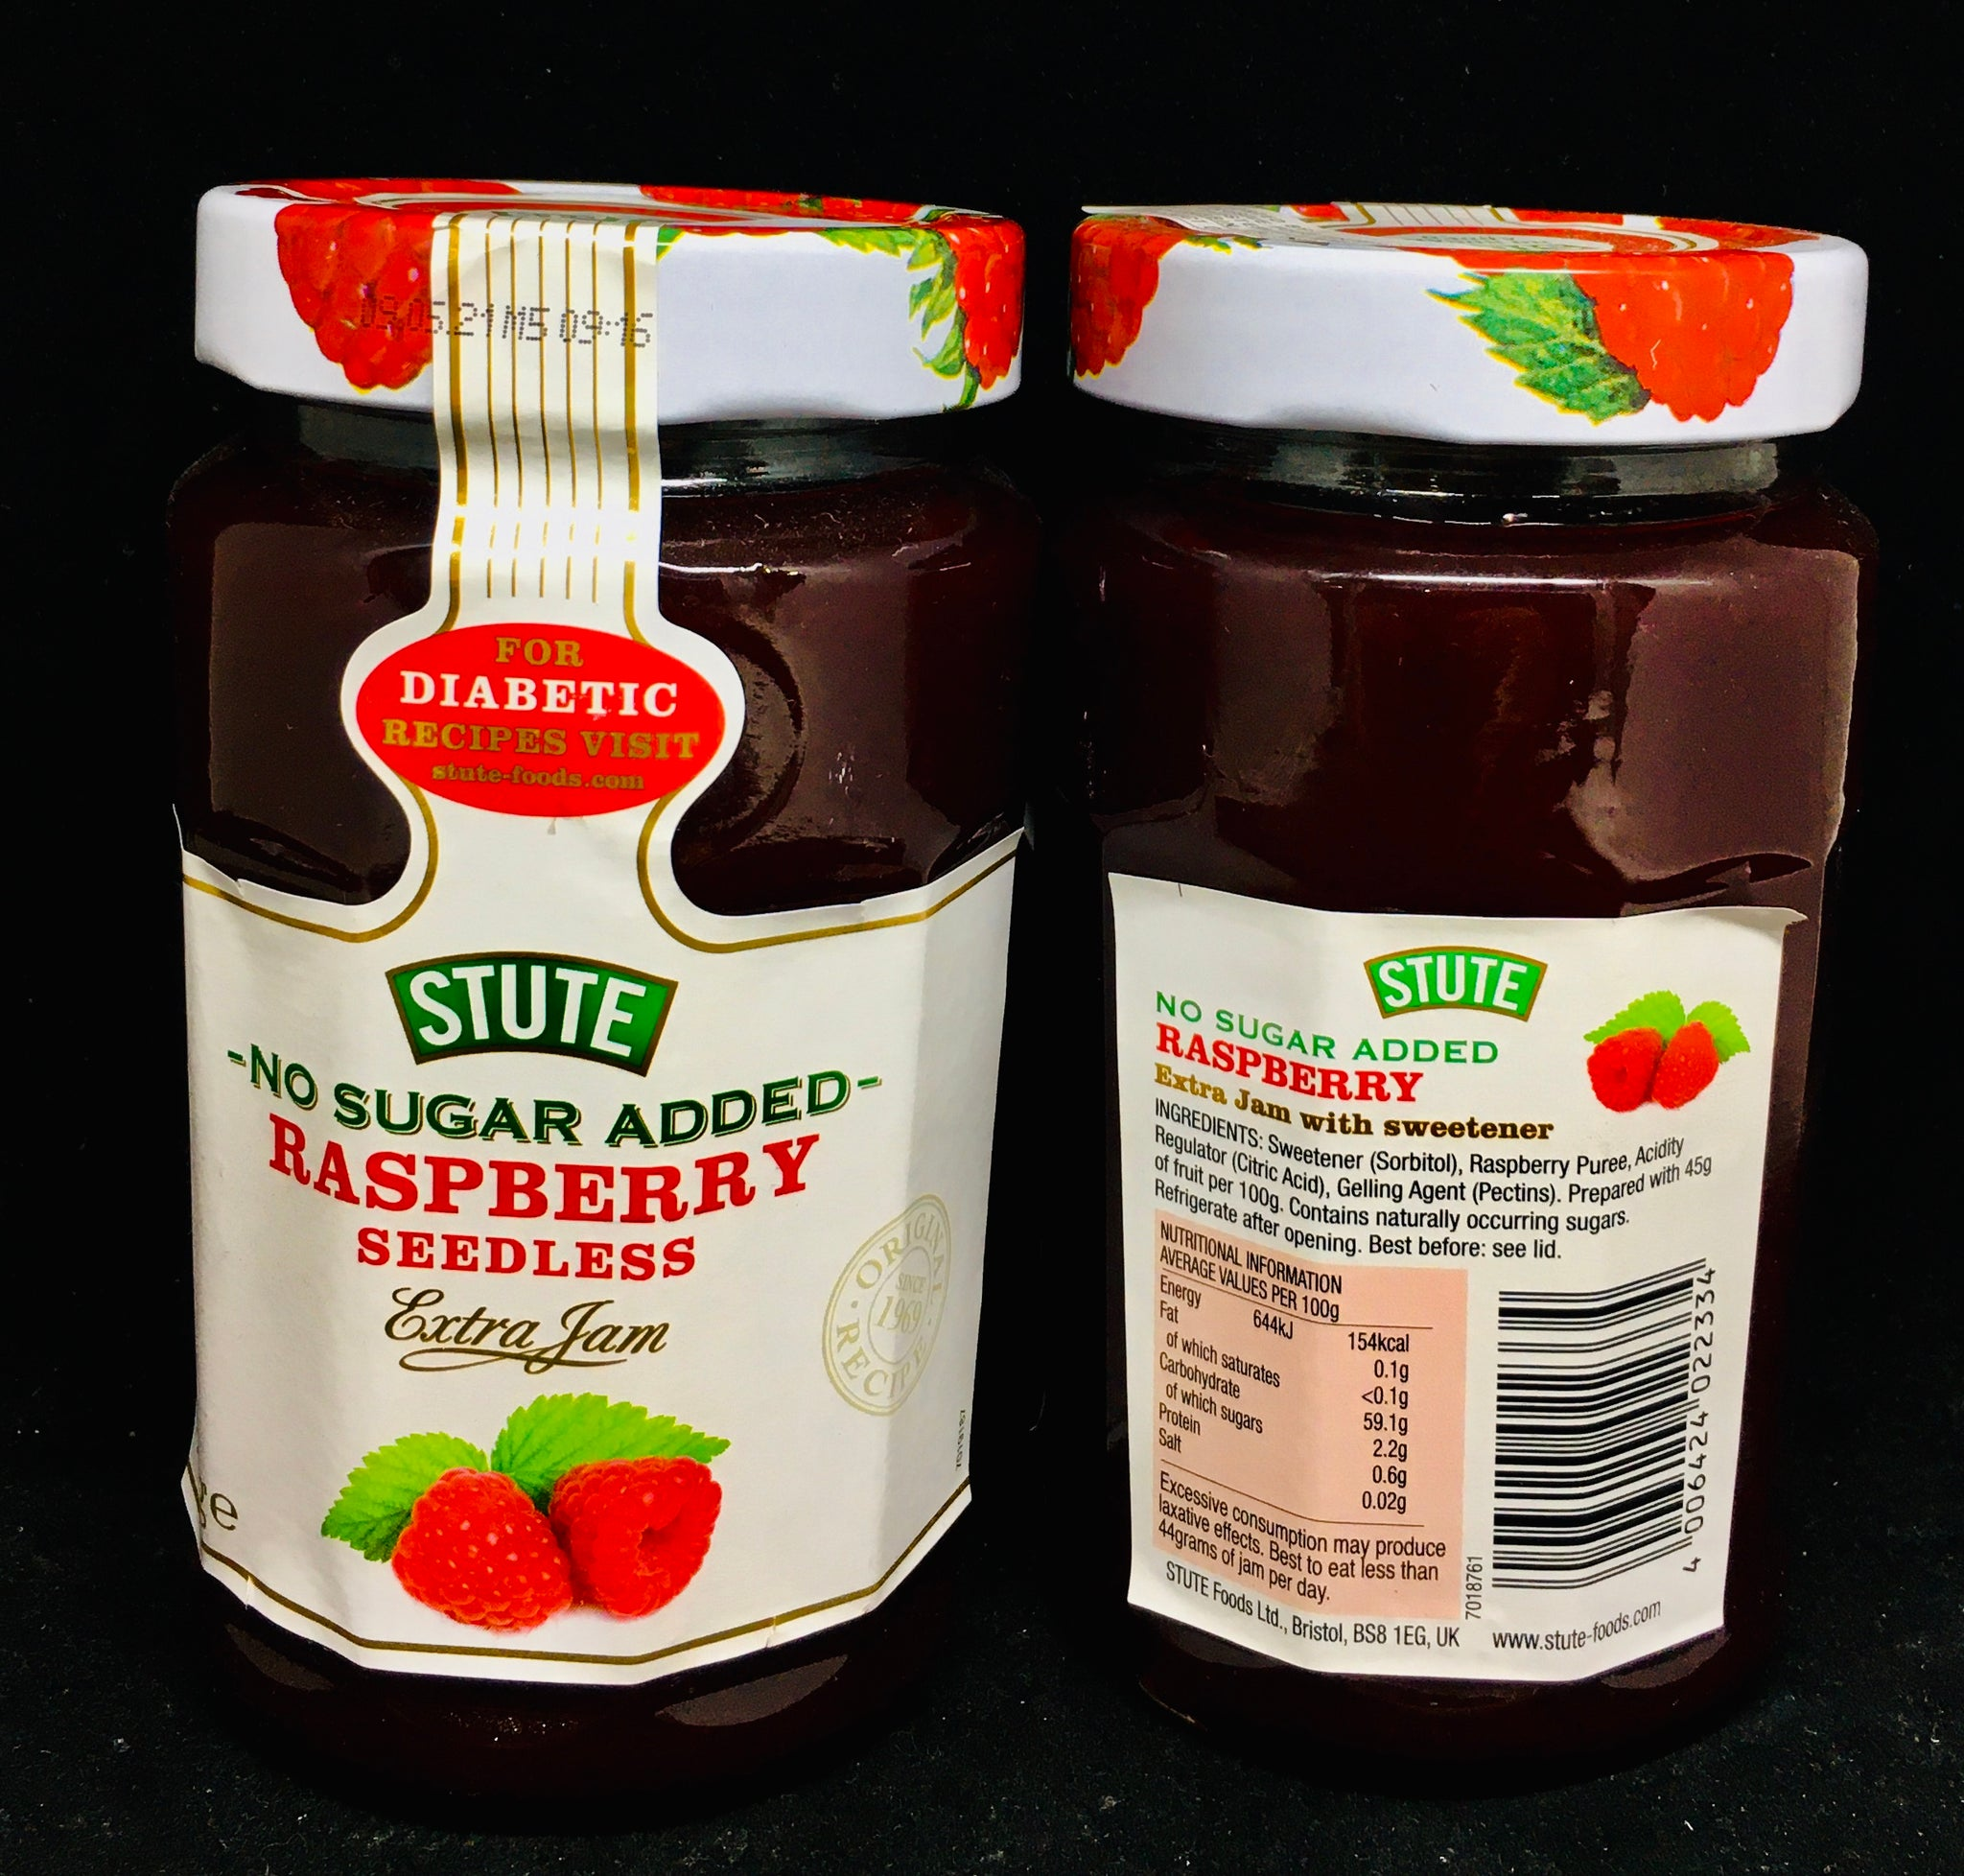 Stute Diabetic Jam - Raspberry - Seedless